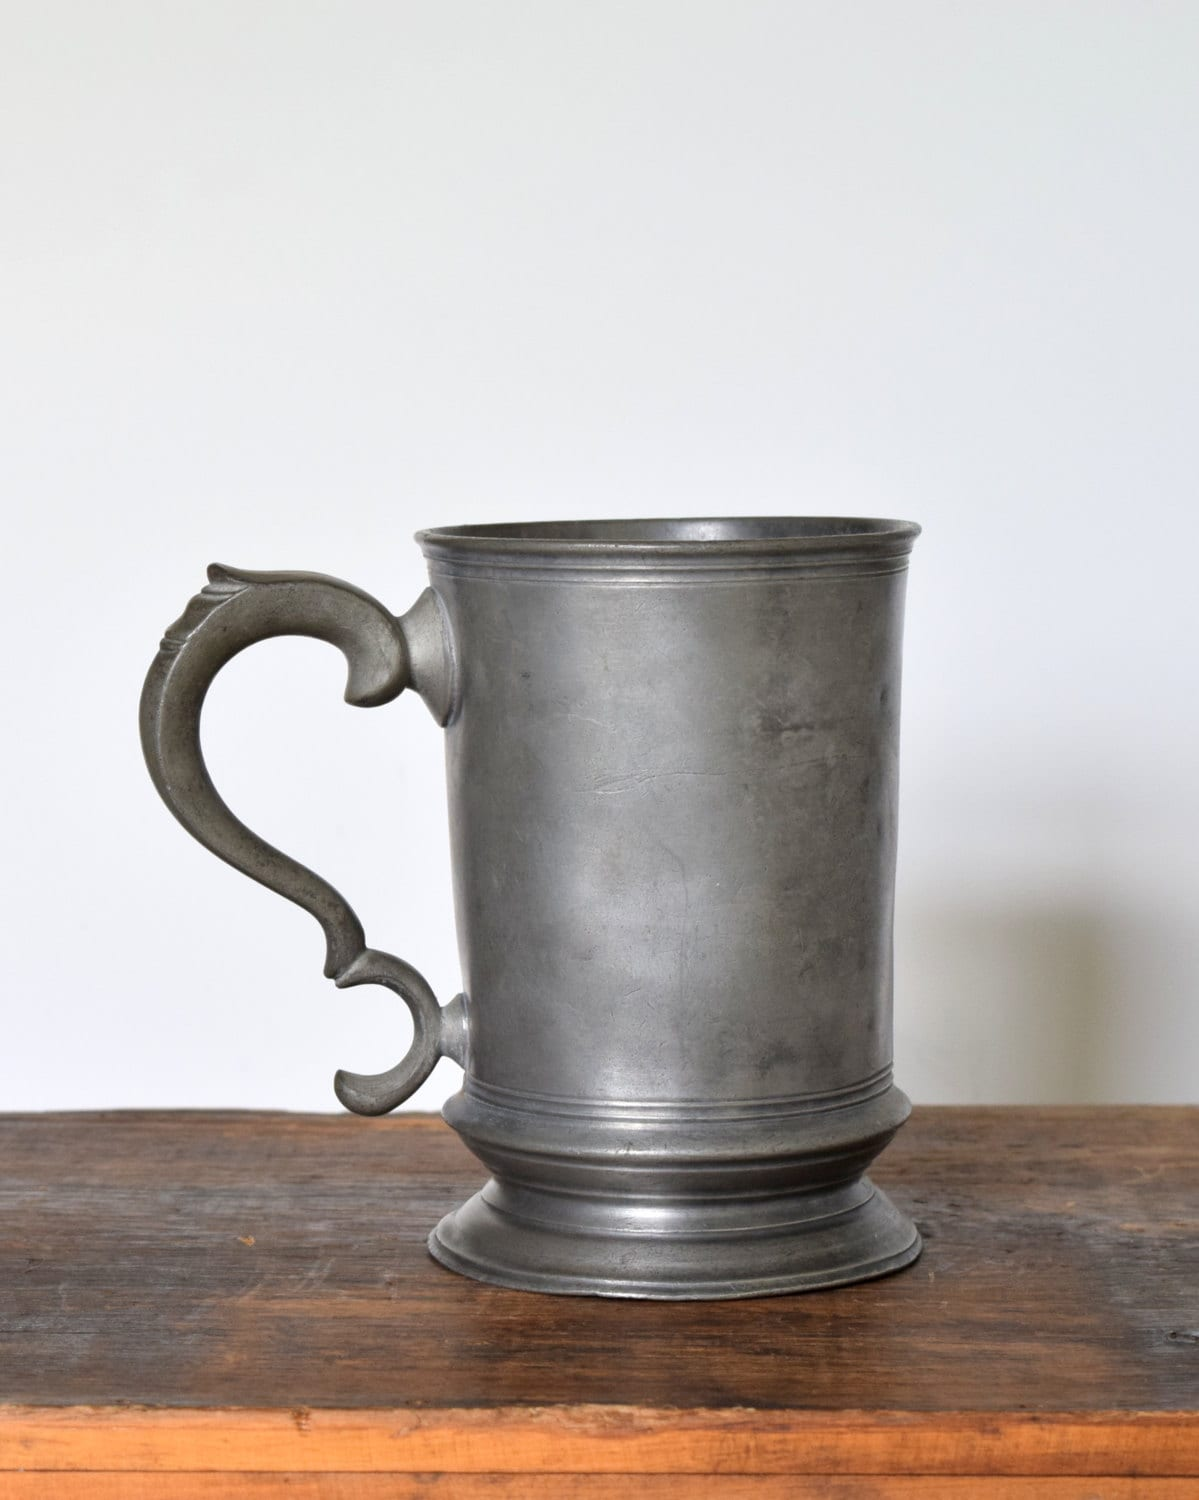 Drinking Beer Out Of Pewter